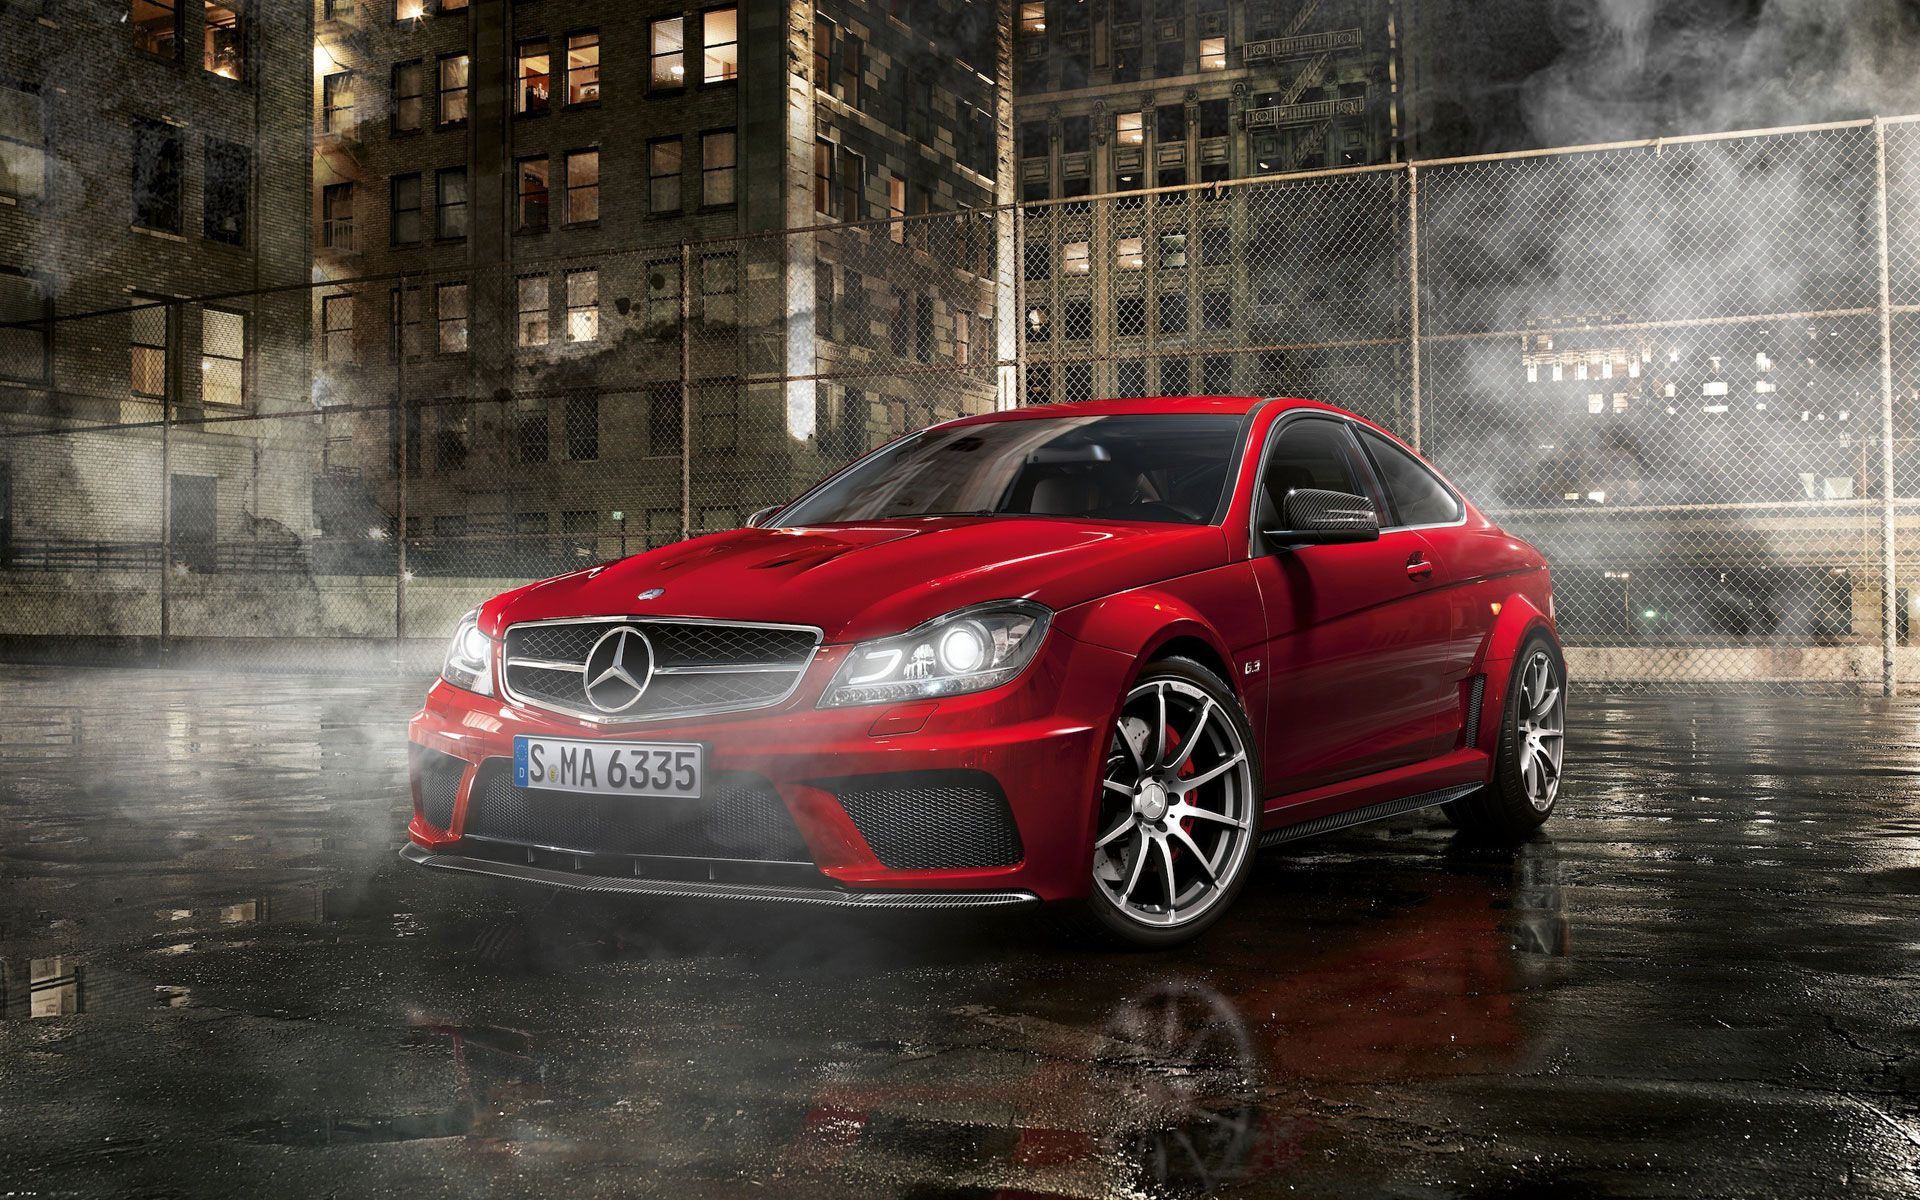 Mercedes Benz C63 Amg Black Series Coupe Wallpaper Autos Parking